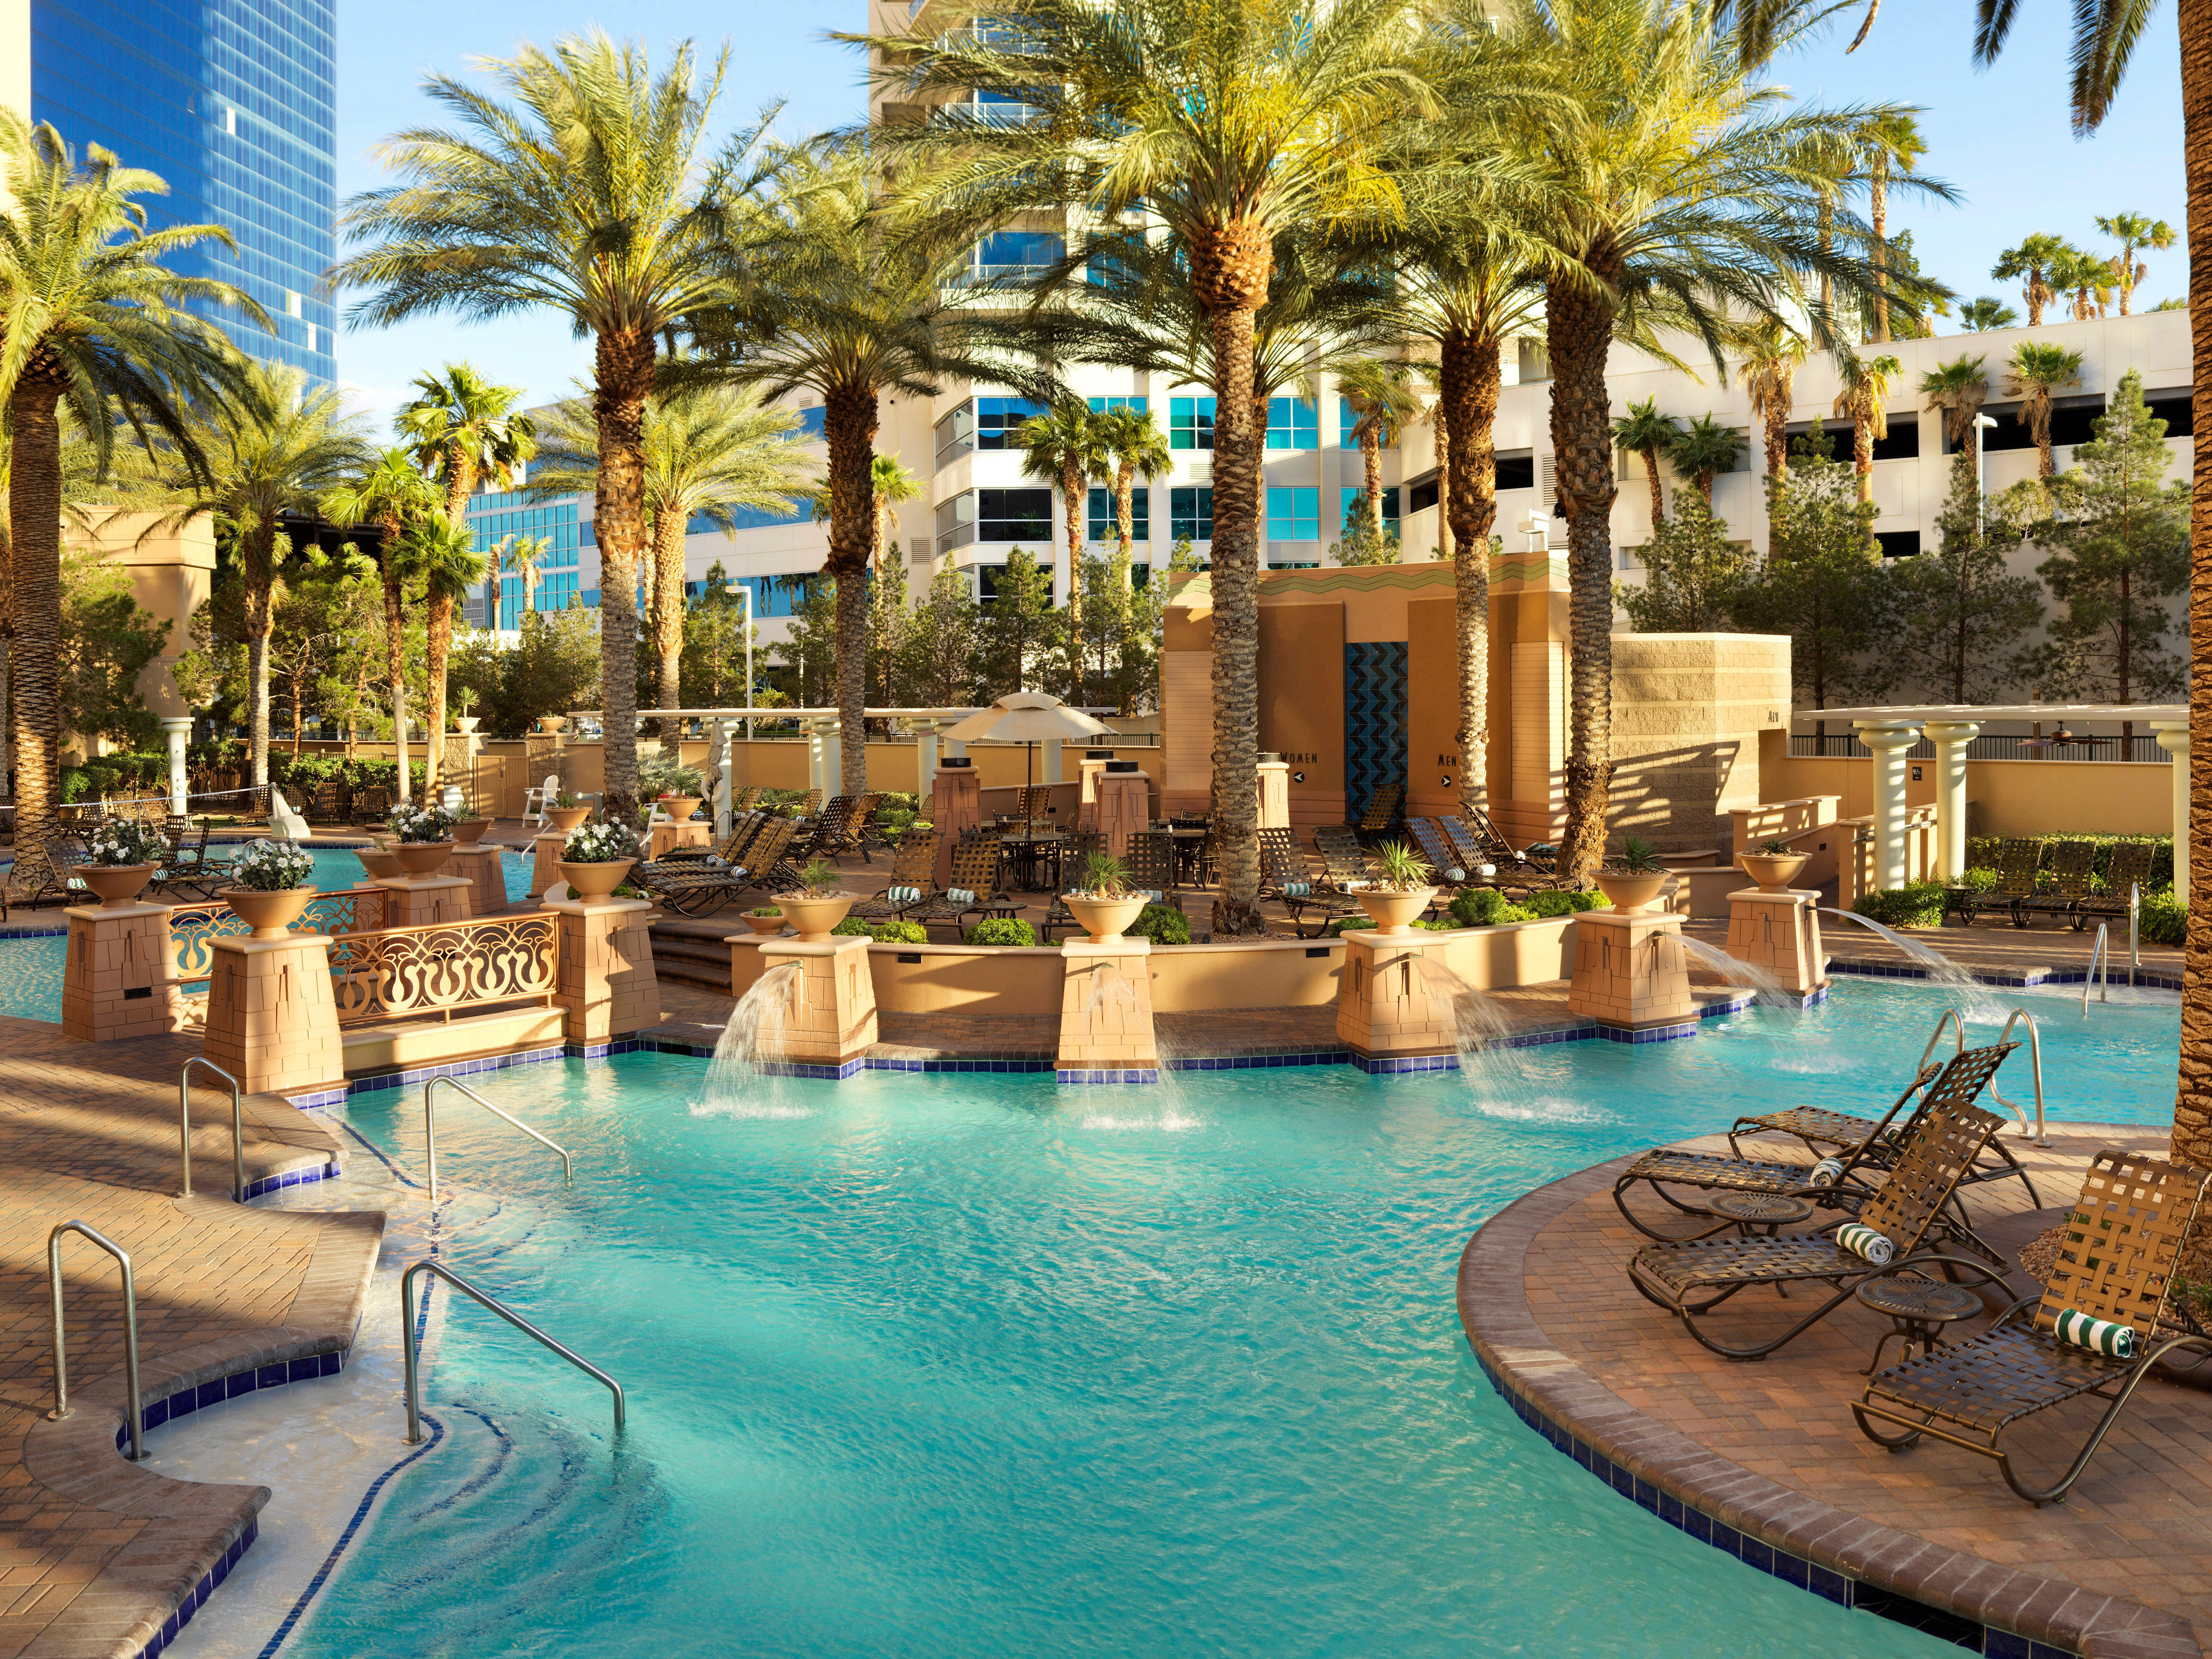 Hilton Grand Vacations on the Boulevard  Las Vegas NV